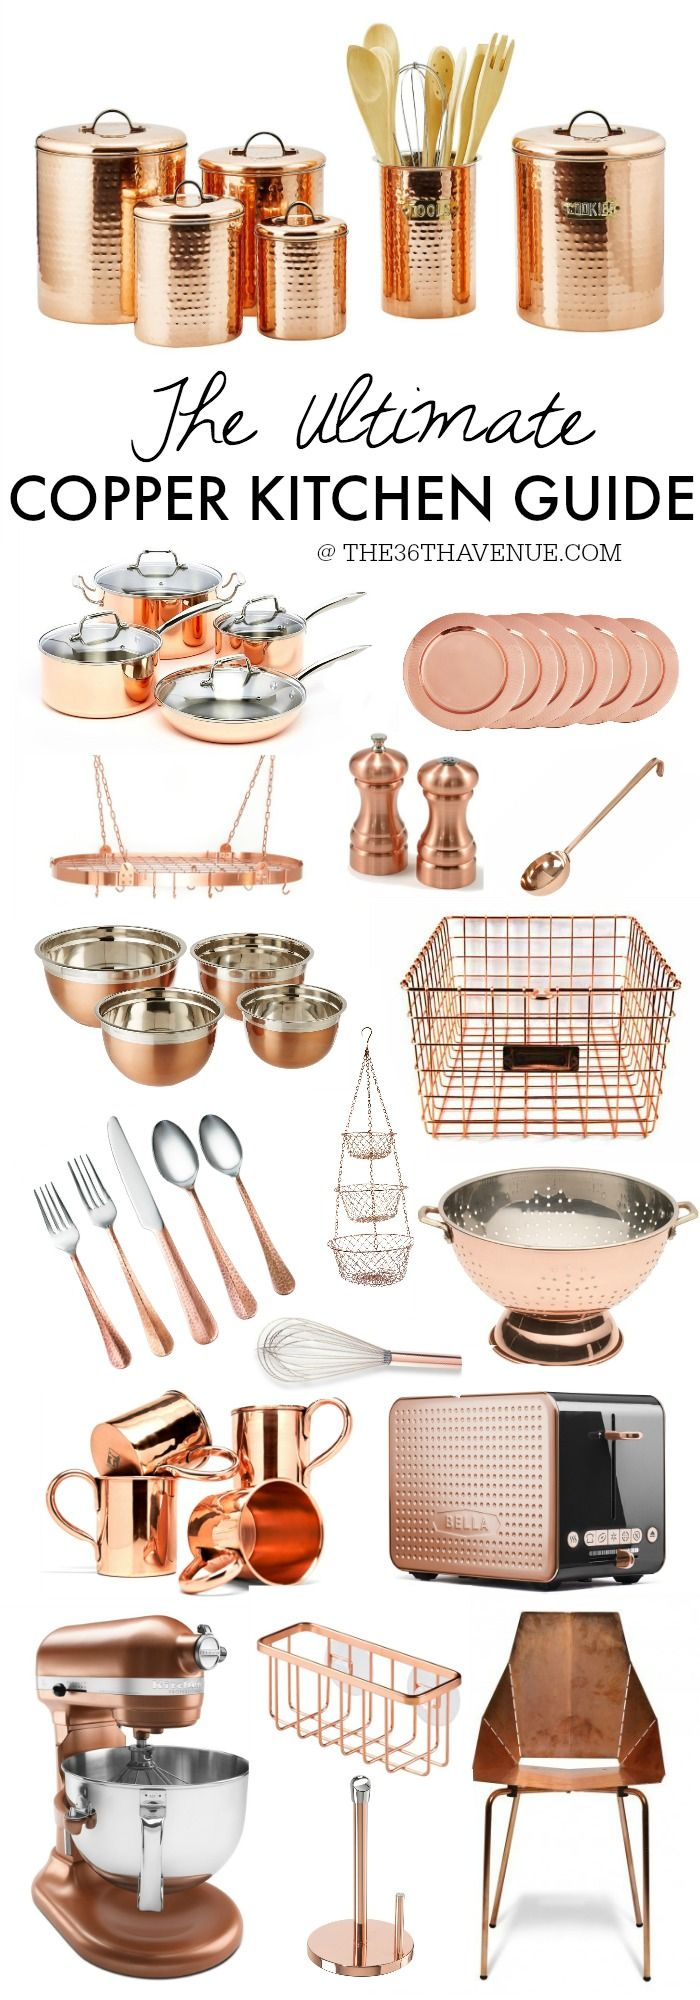 Copper Kitchen Decor - This is the Ultimate Copper Kitchen Guide. Everything you need to give your kitchen a fresh, trendy, and gorgeous new look! If you like gold rose tones you are going to love this!